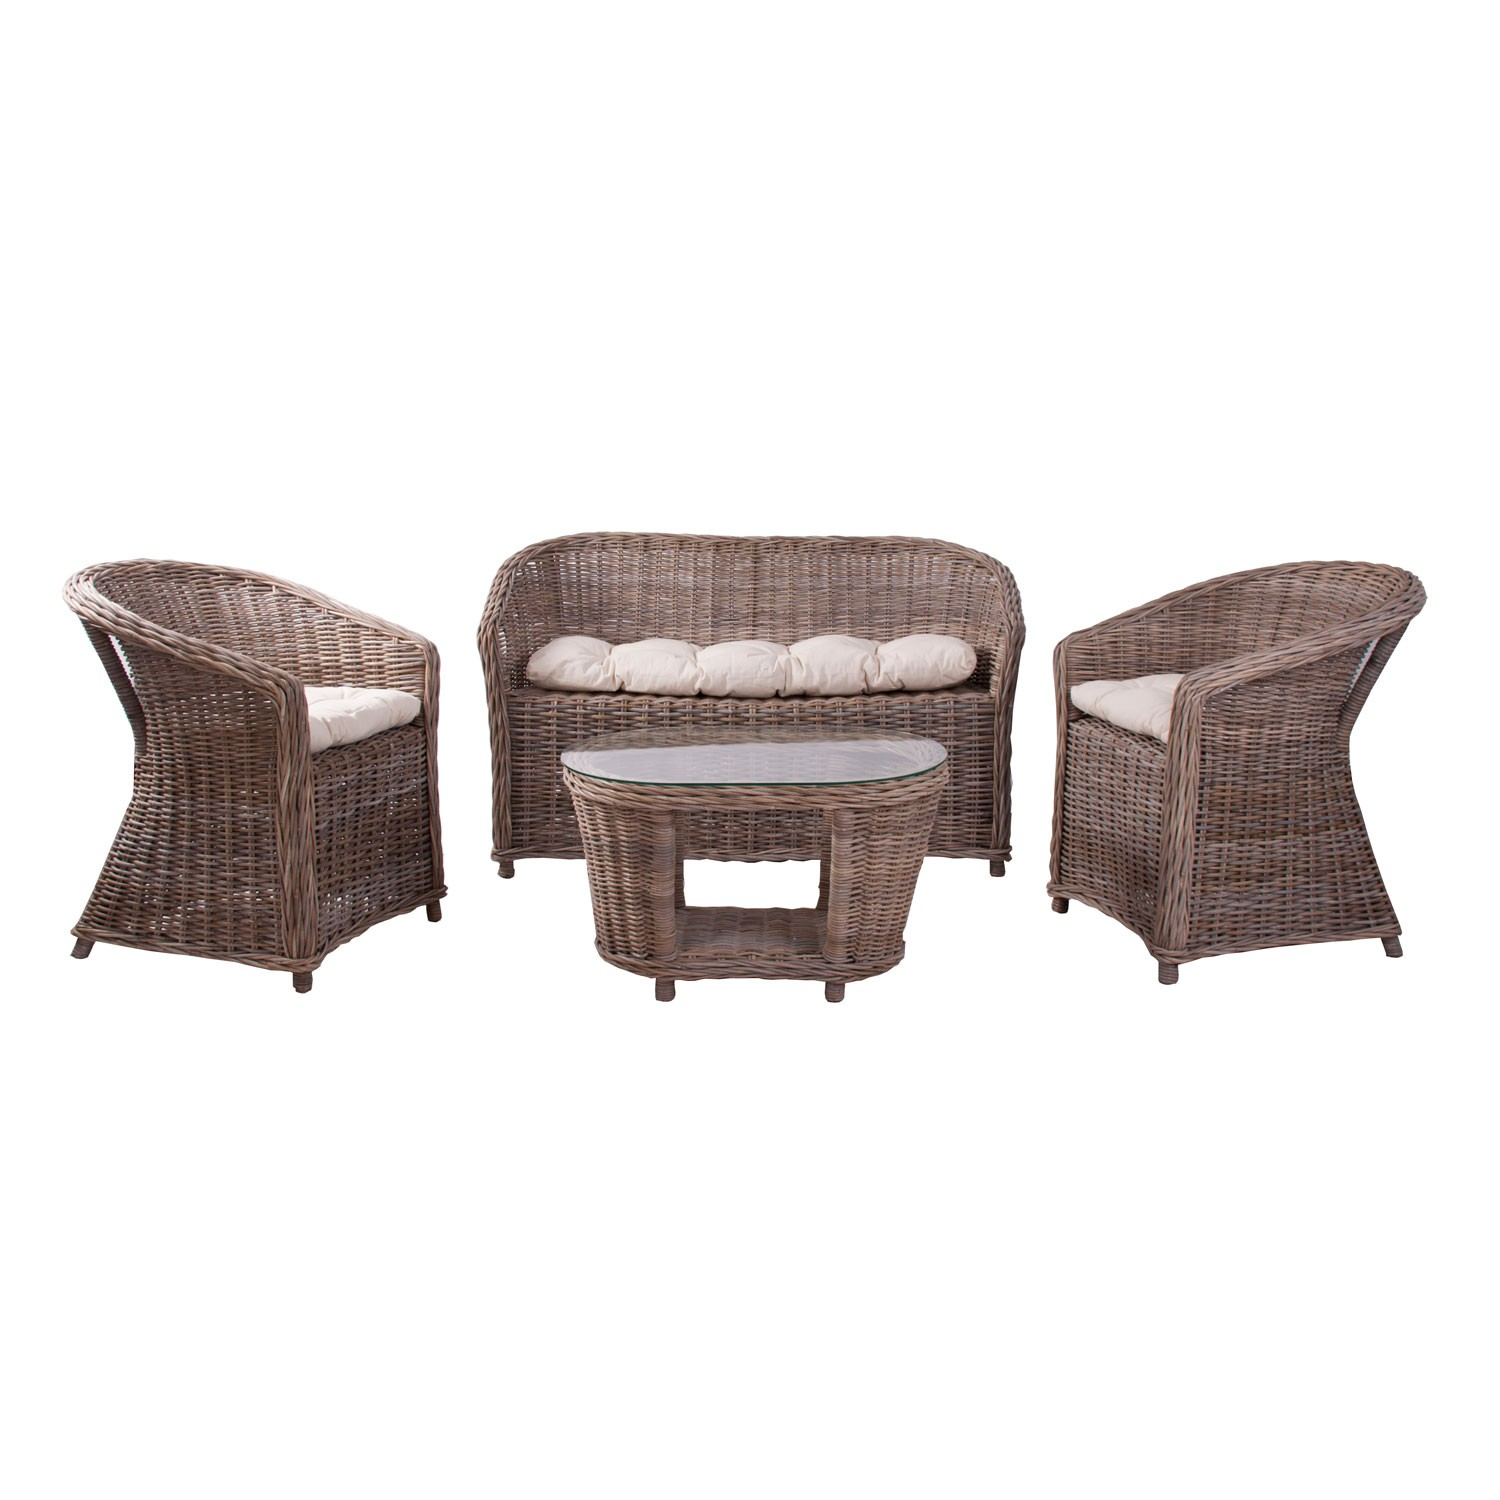 SET DE 4 MUEBLES JARDIN COOL